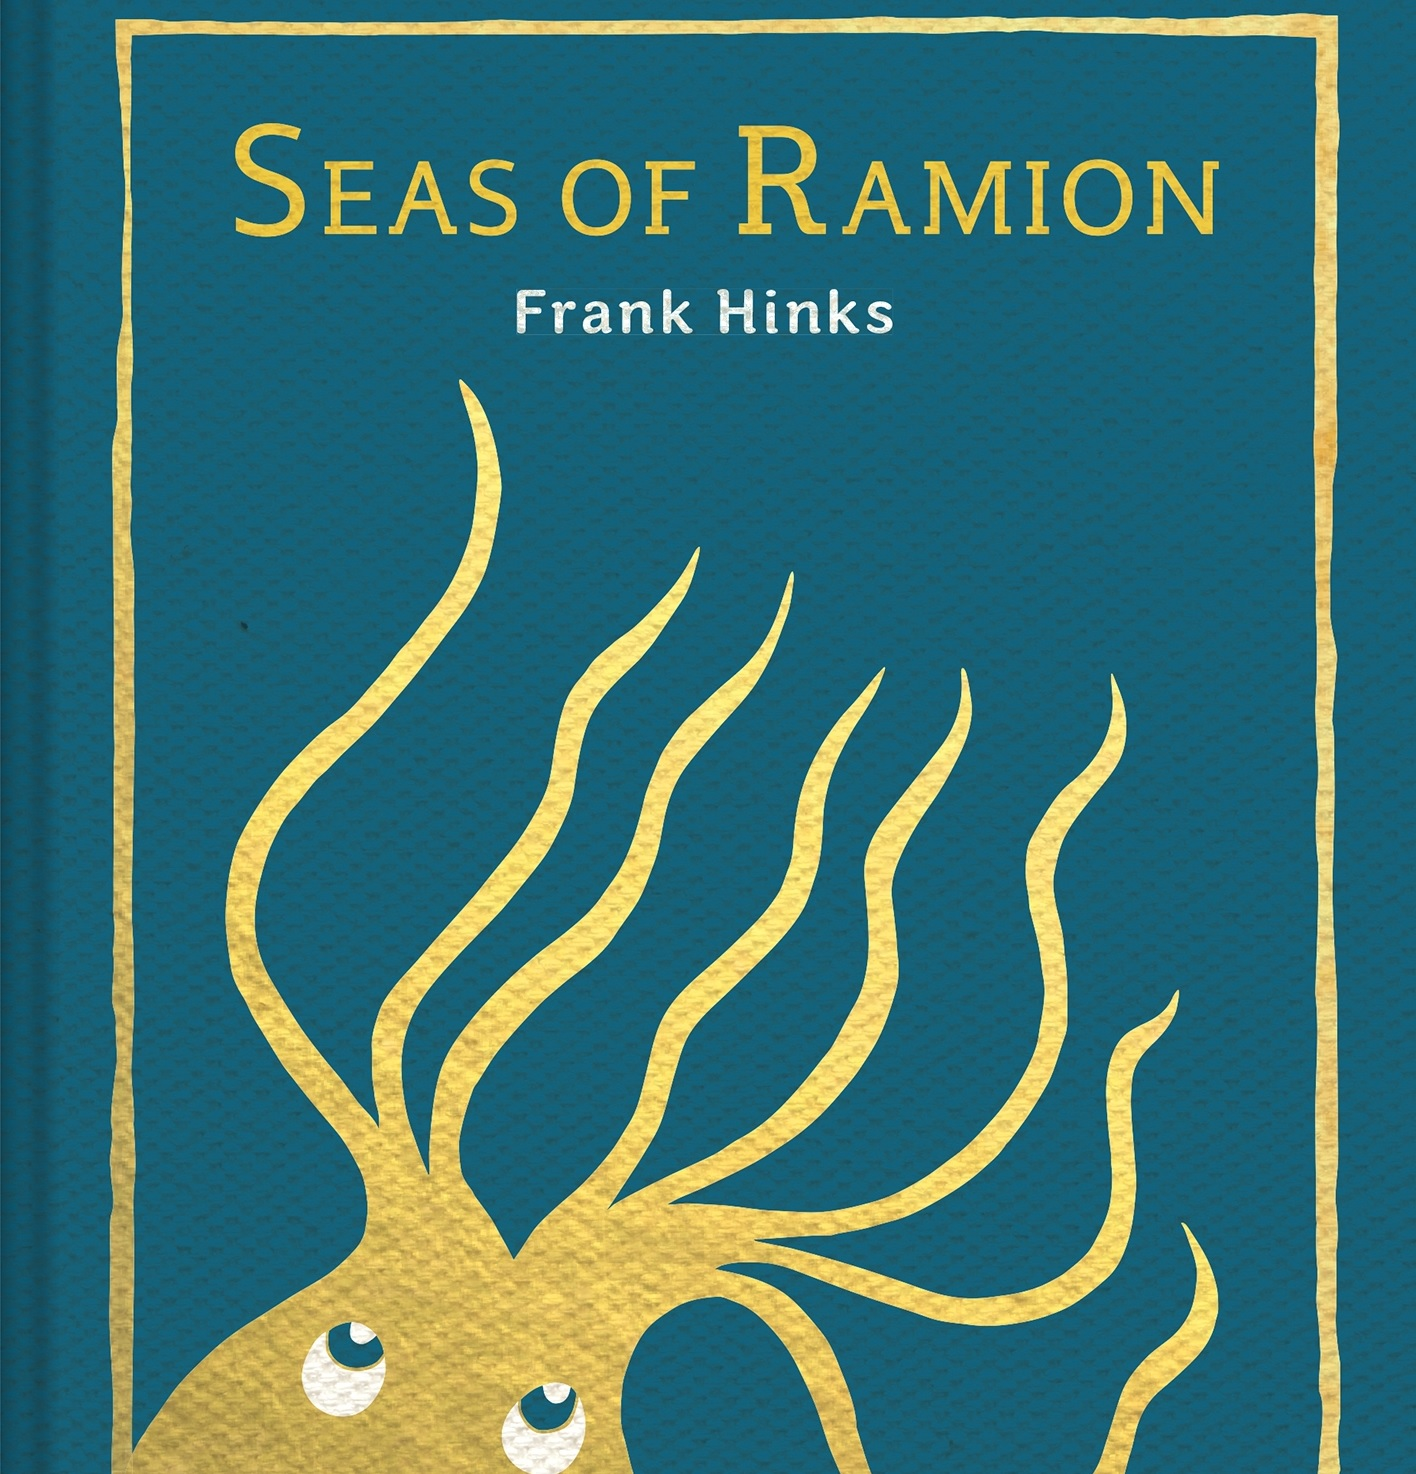 Seas of Ramion by Frank Hinks – Book Review